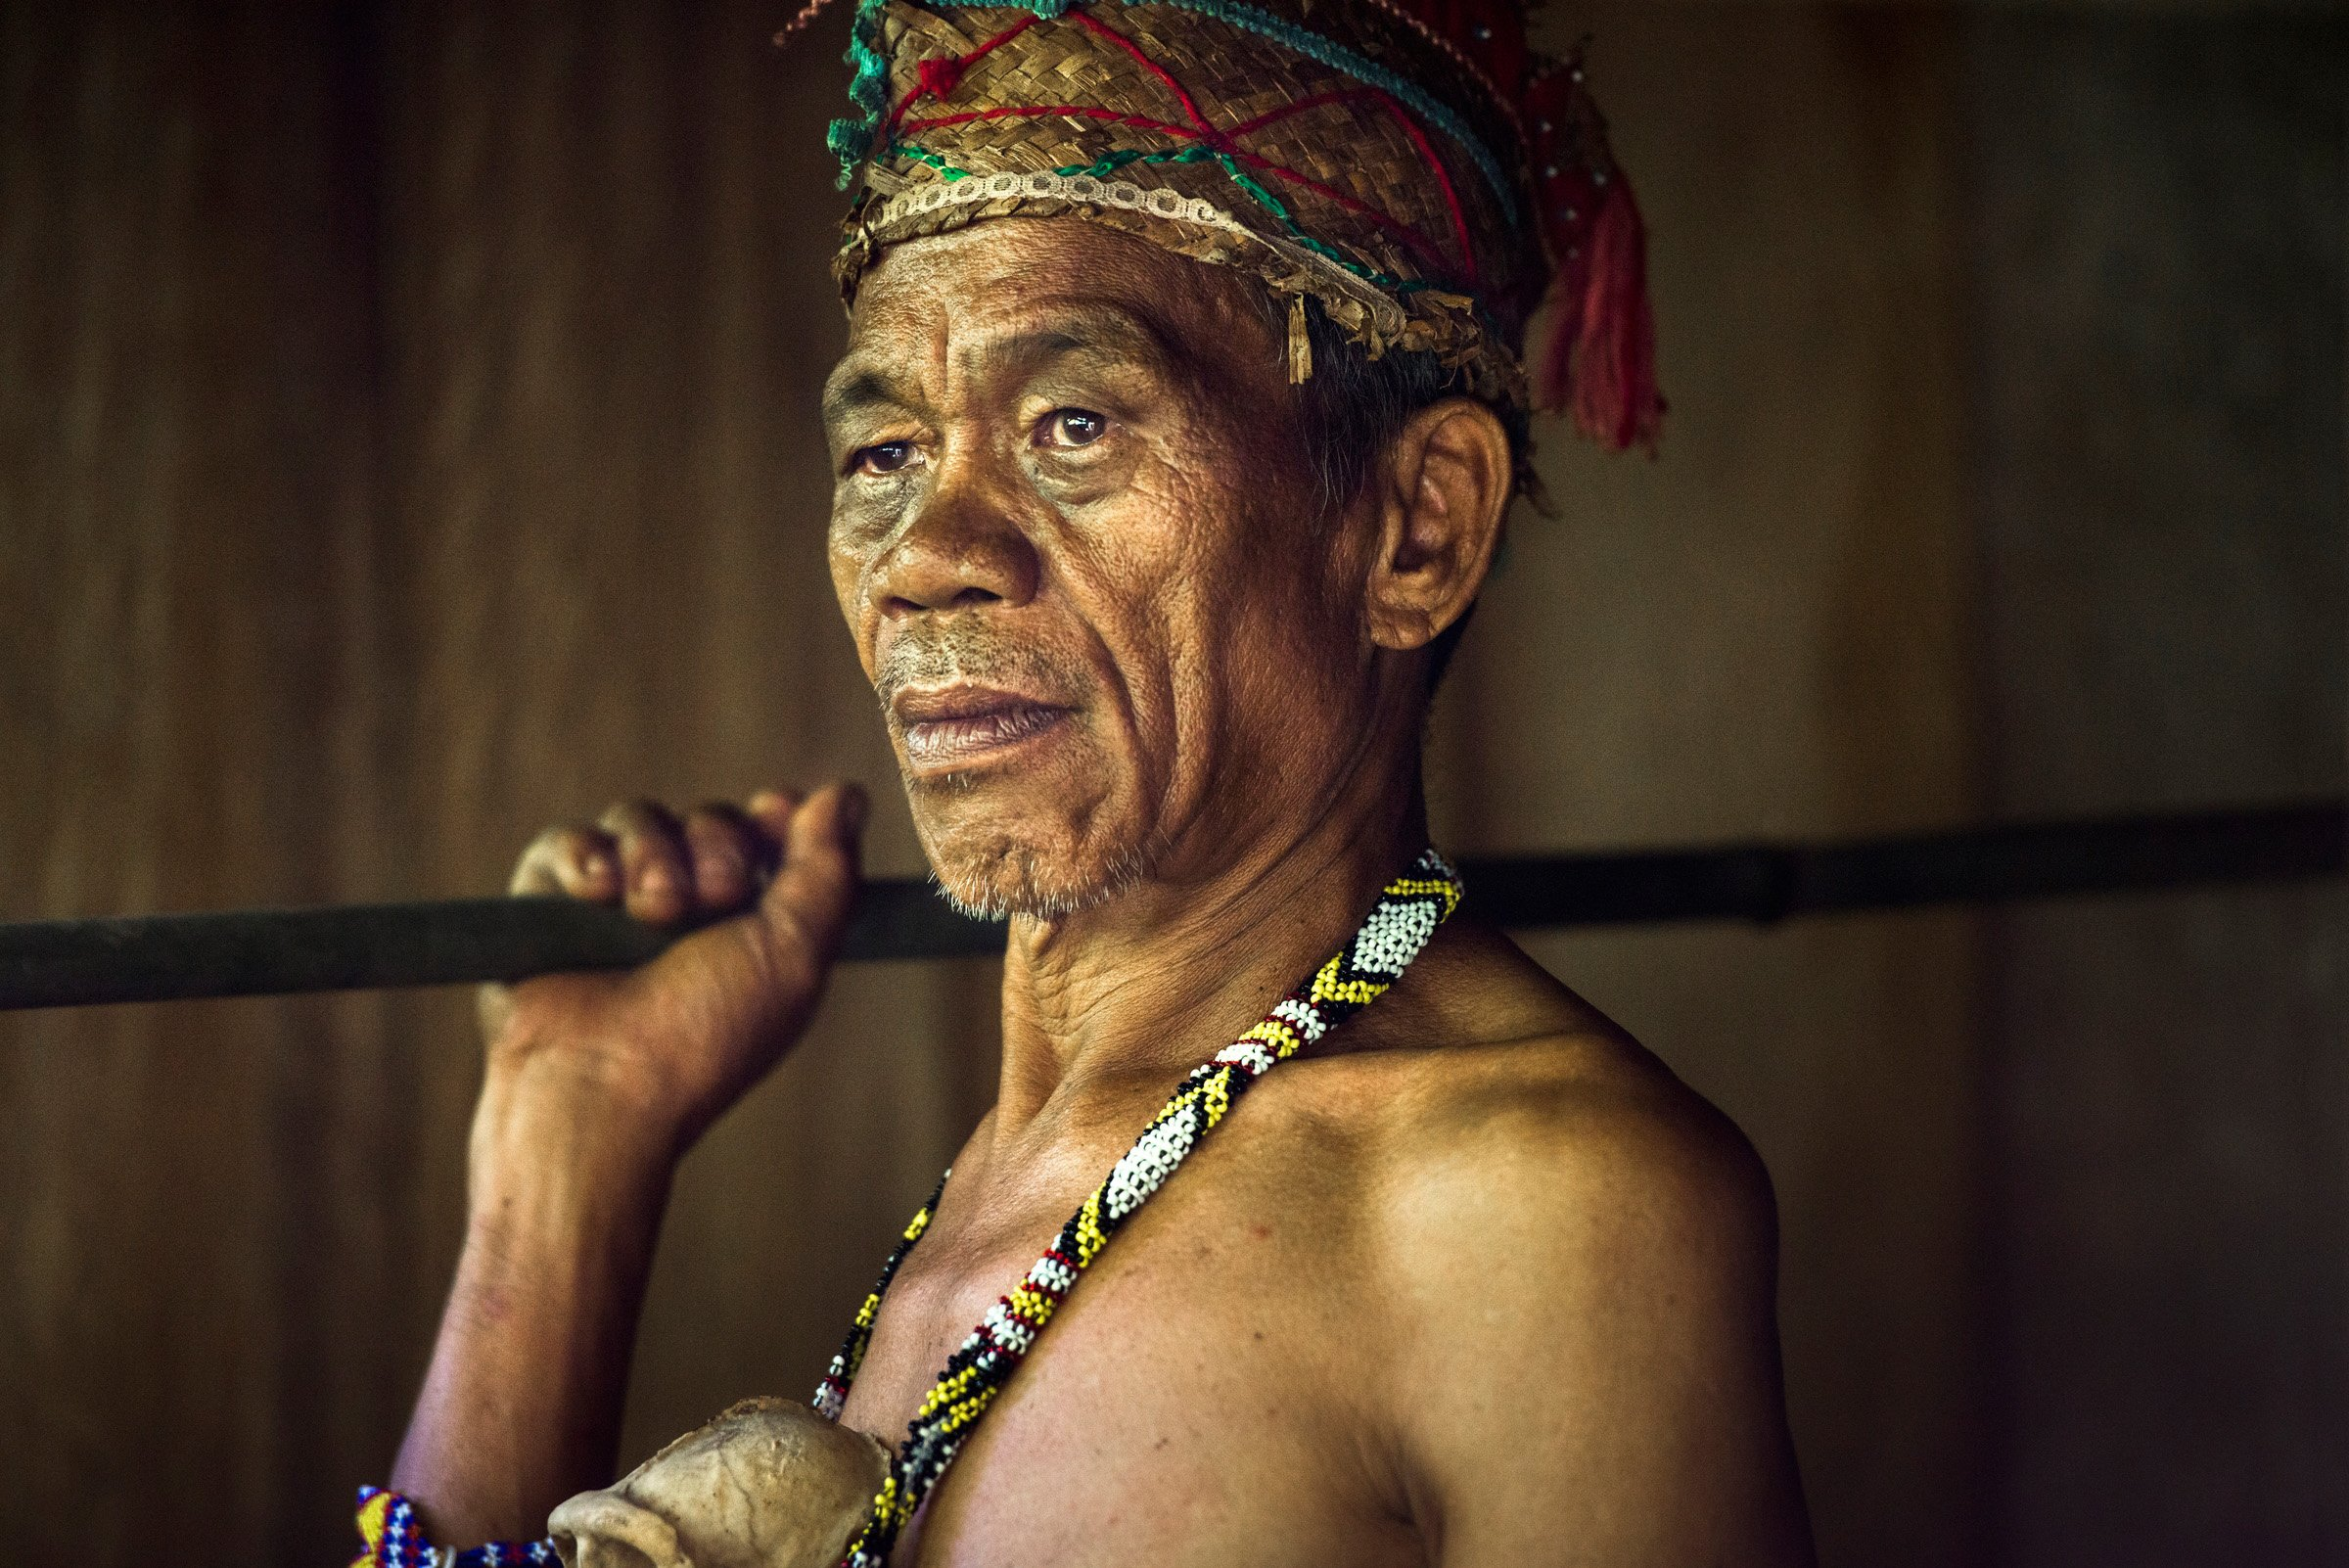 Considered as one of the 18 indigenous ethnolinguistic Lumad groups in Mindanao, the native Mansaka continued their way of life during the hundreds of years of migrations and inter-marriages of the Malays, Indonesians and the Chinese. Although the Mansaka people evolved over time, they were never heavily influenced by the Spanish during their colonization.